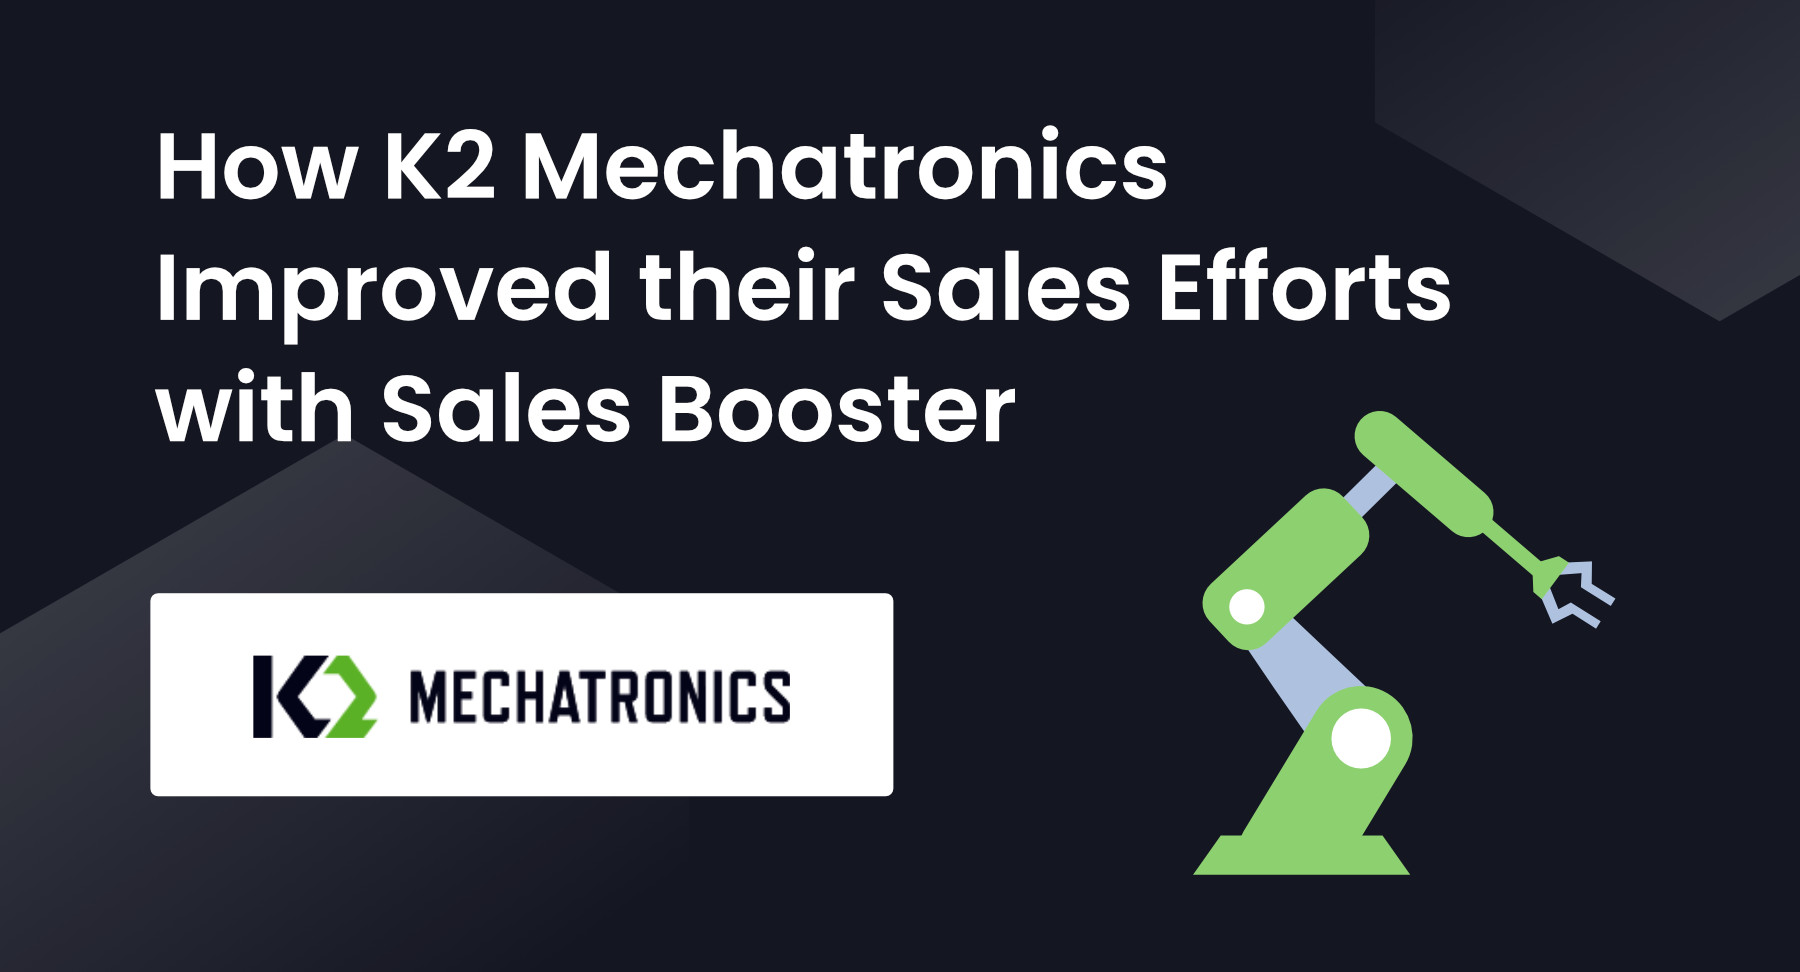 How K2 Mechatronics Improved their Sales Efforts with Sales Booster